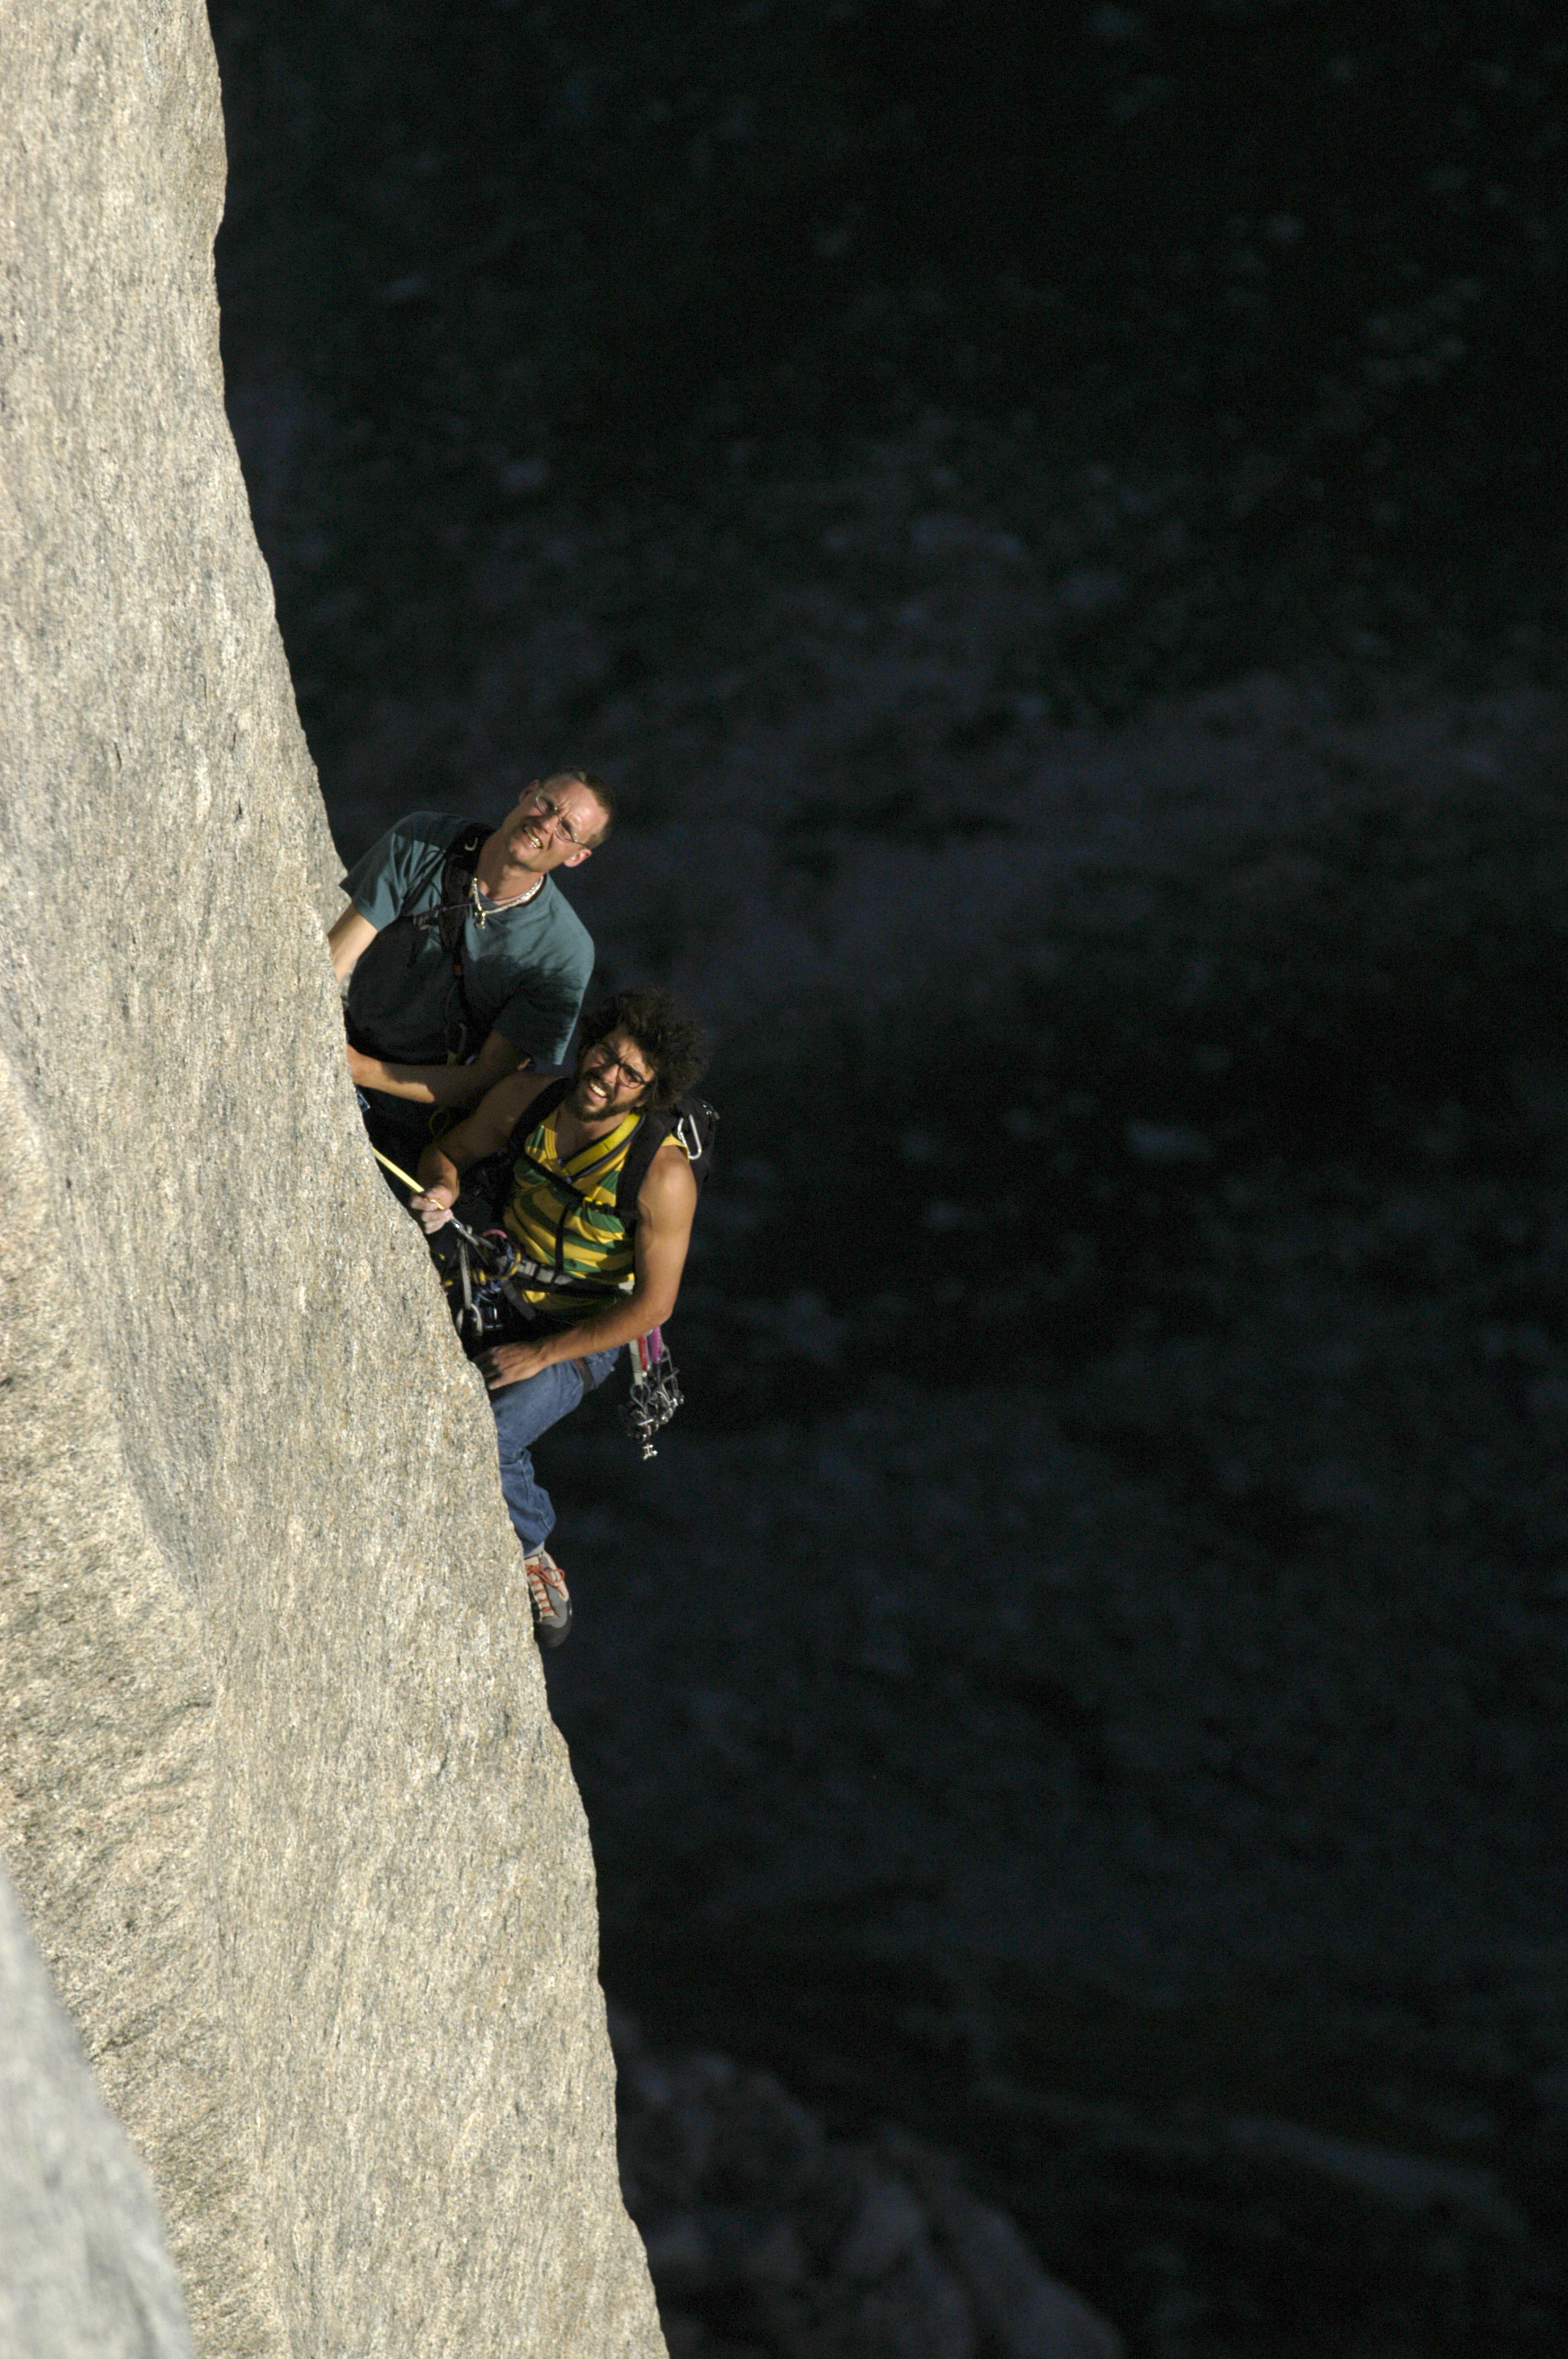 Mårter Blixt and I at the belay under the crux pitch of Thanathos